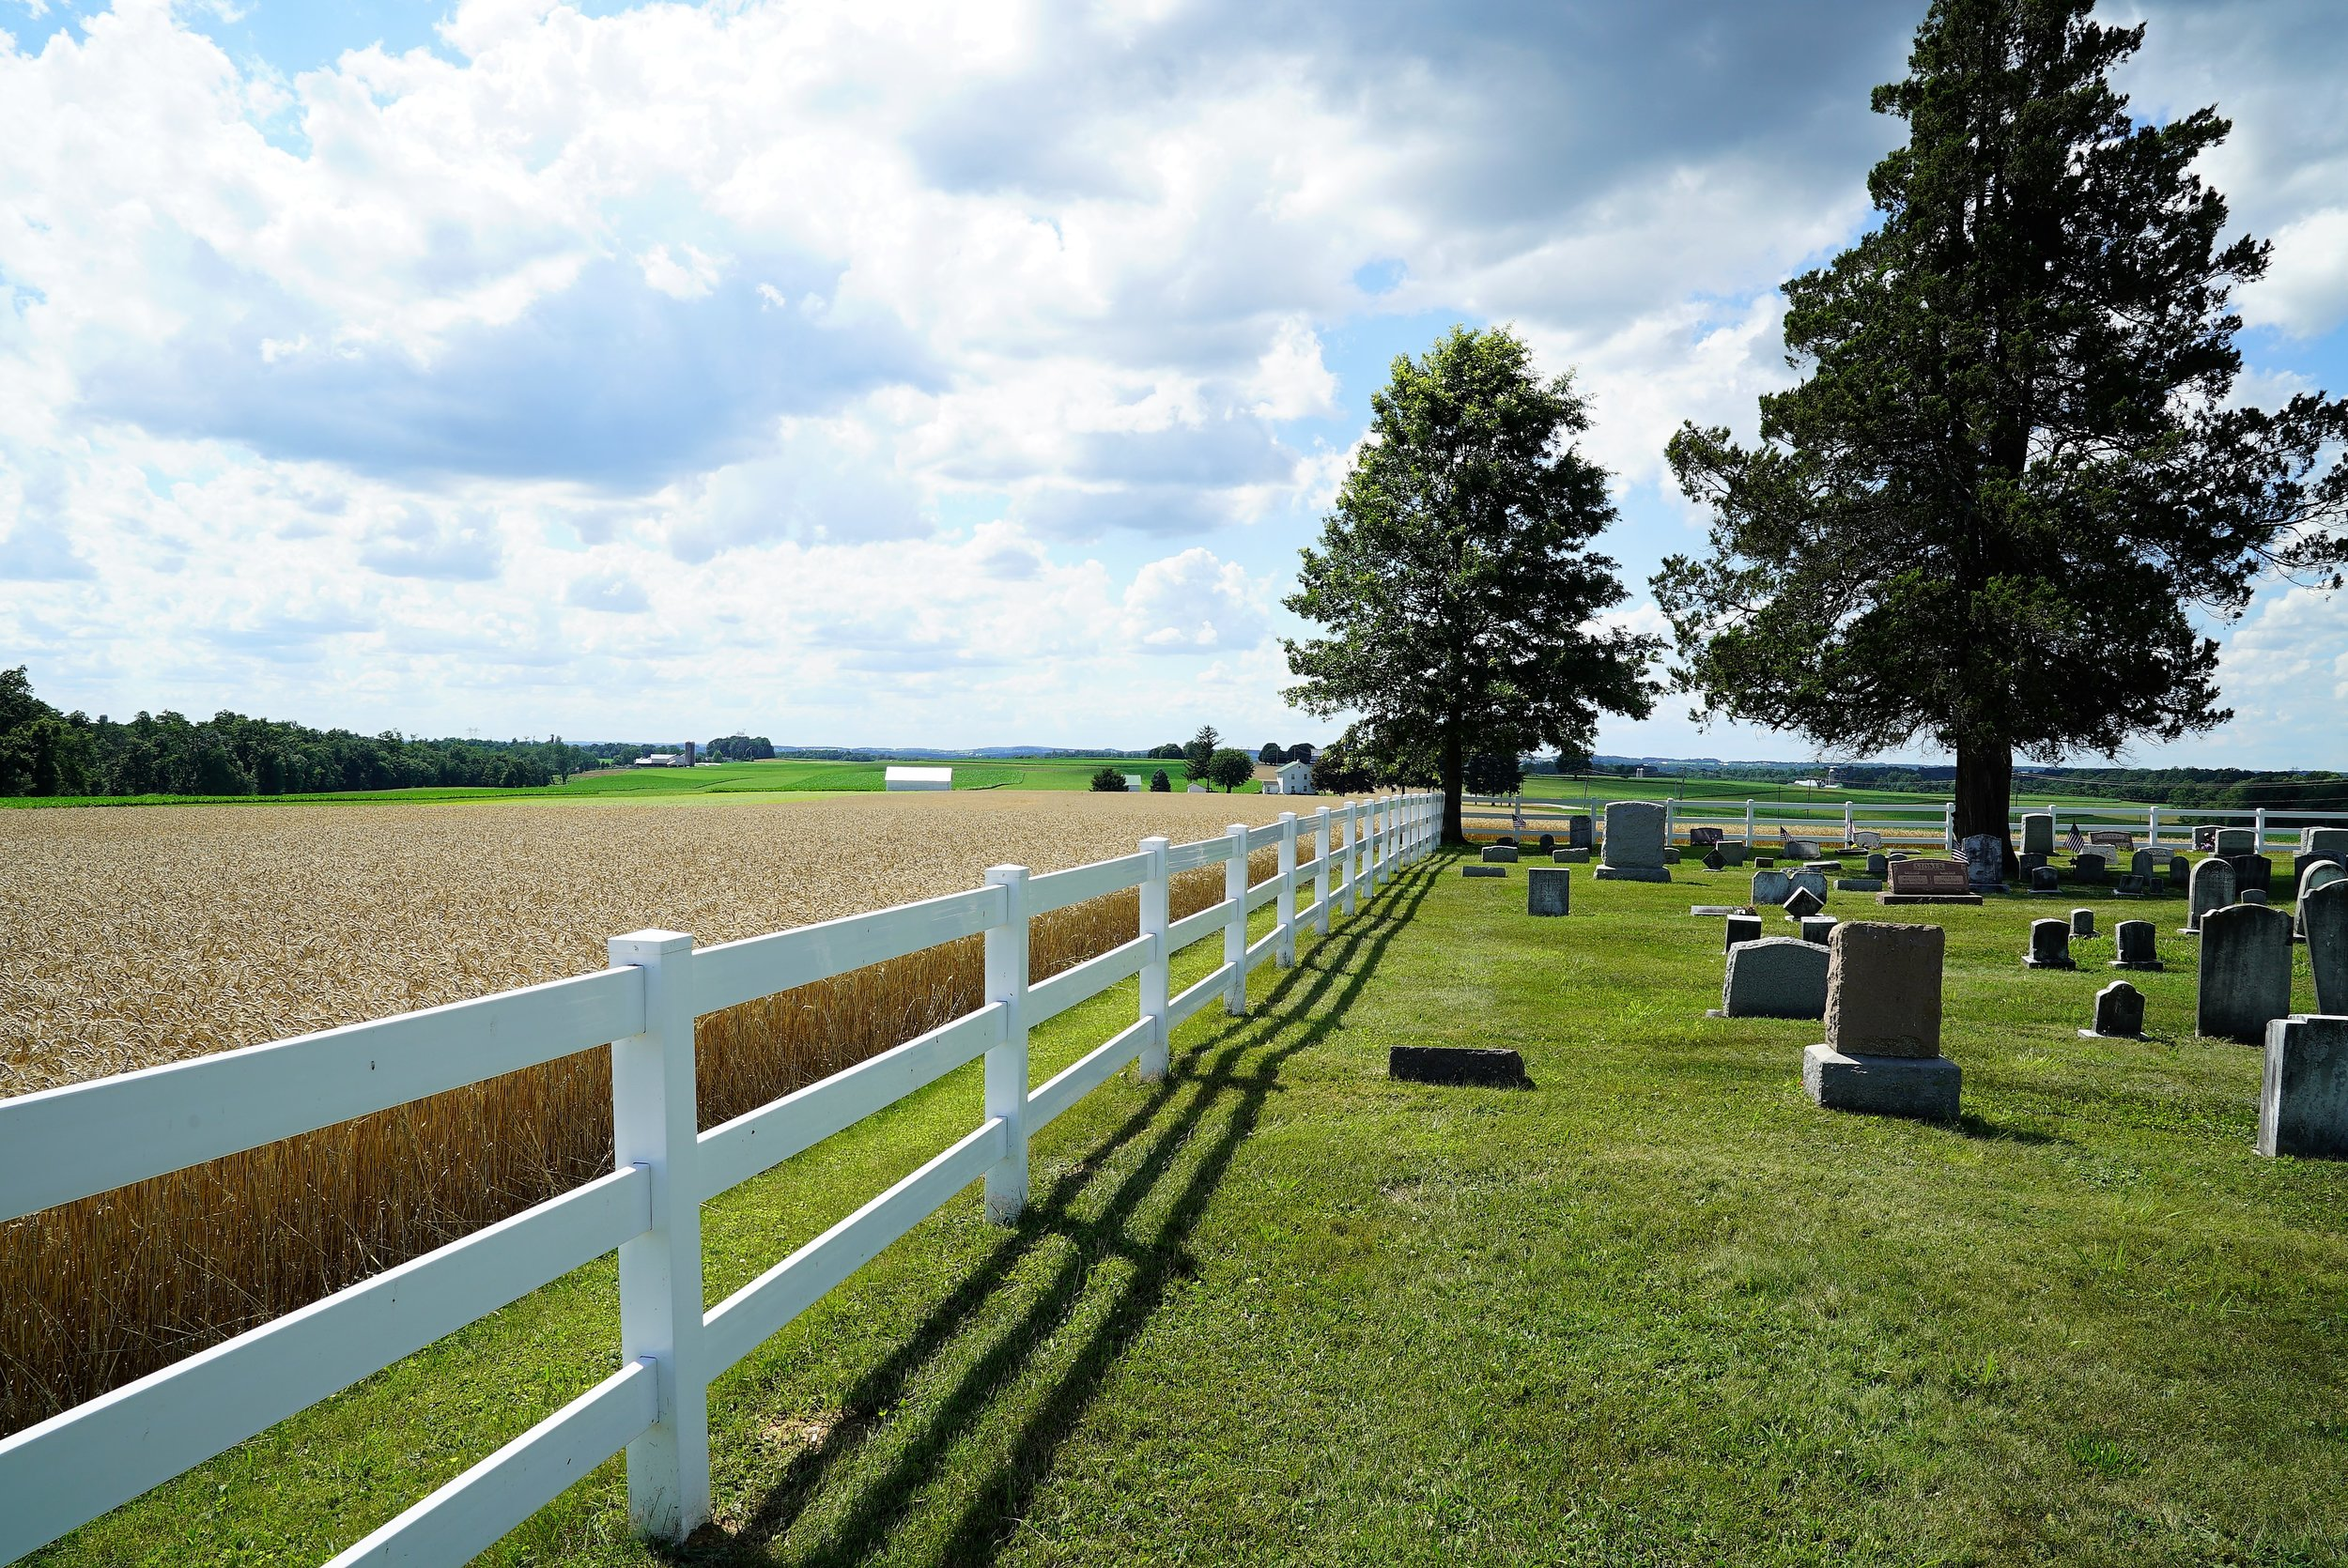 The cemetery at Beulah Baptist Church has vistas of lots of farm land. Oxford, Pennsylvania.